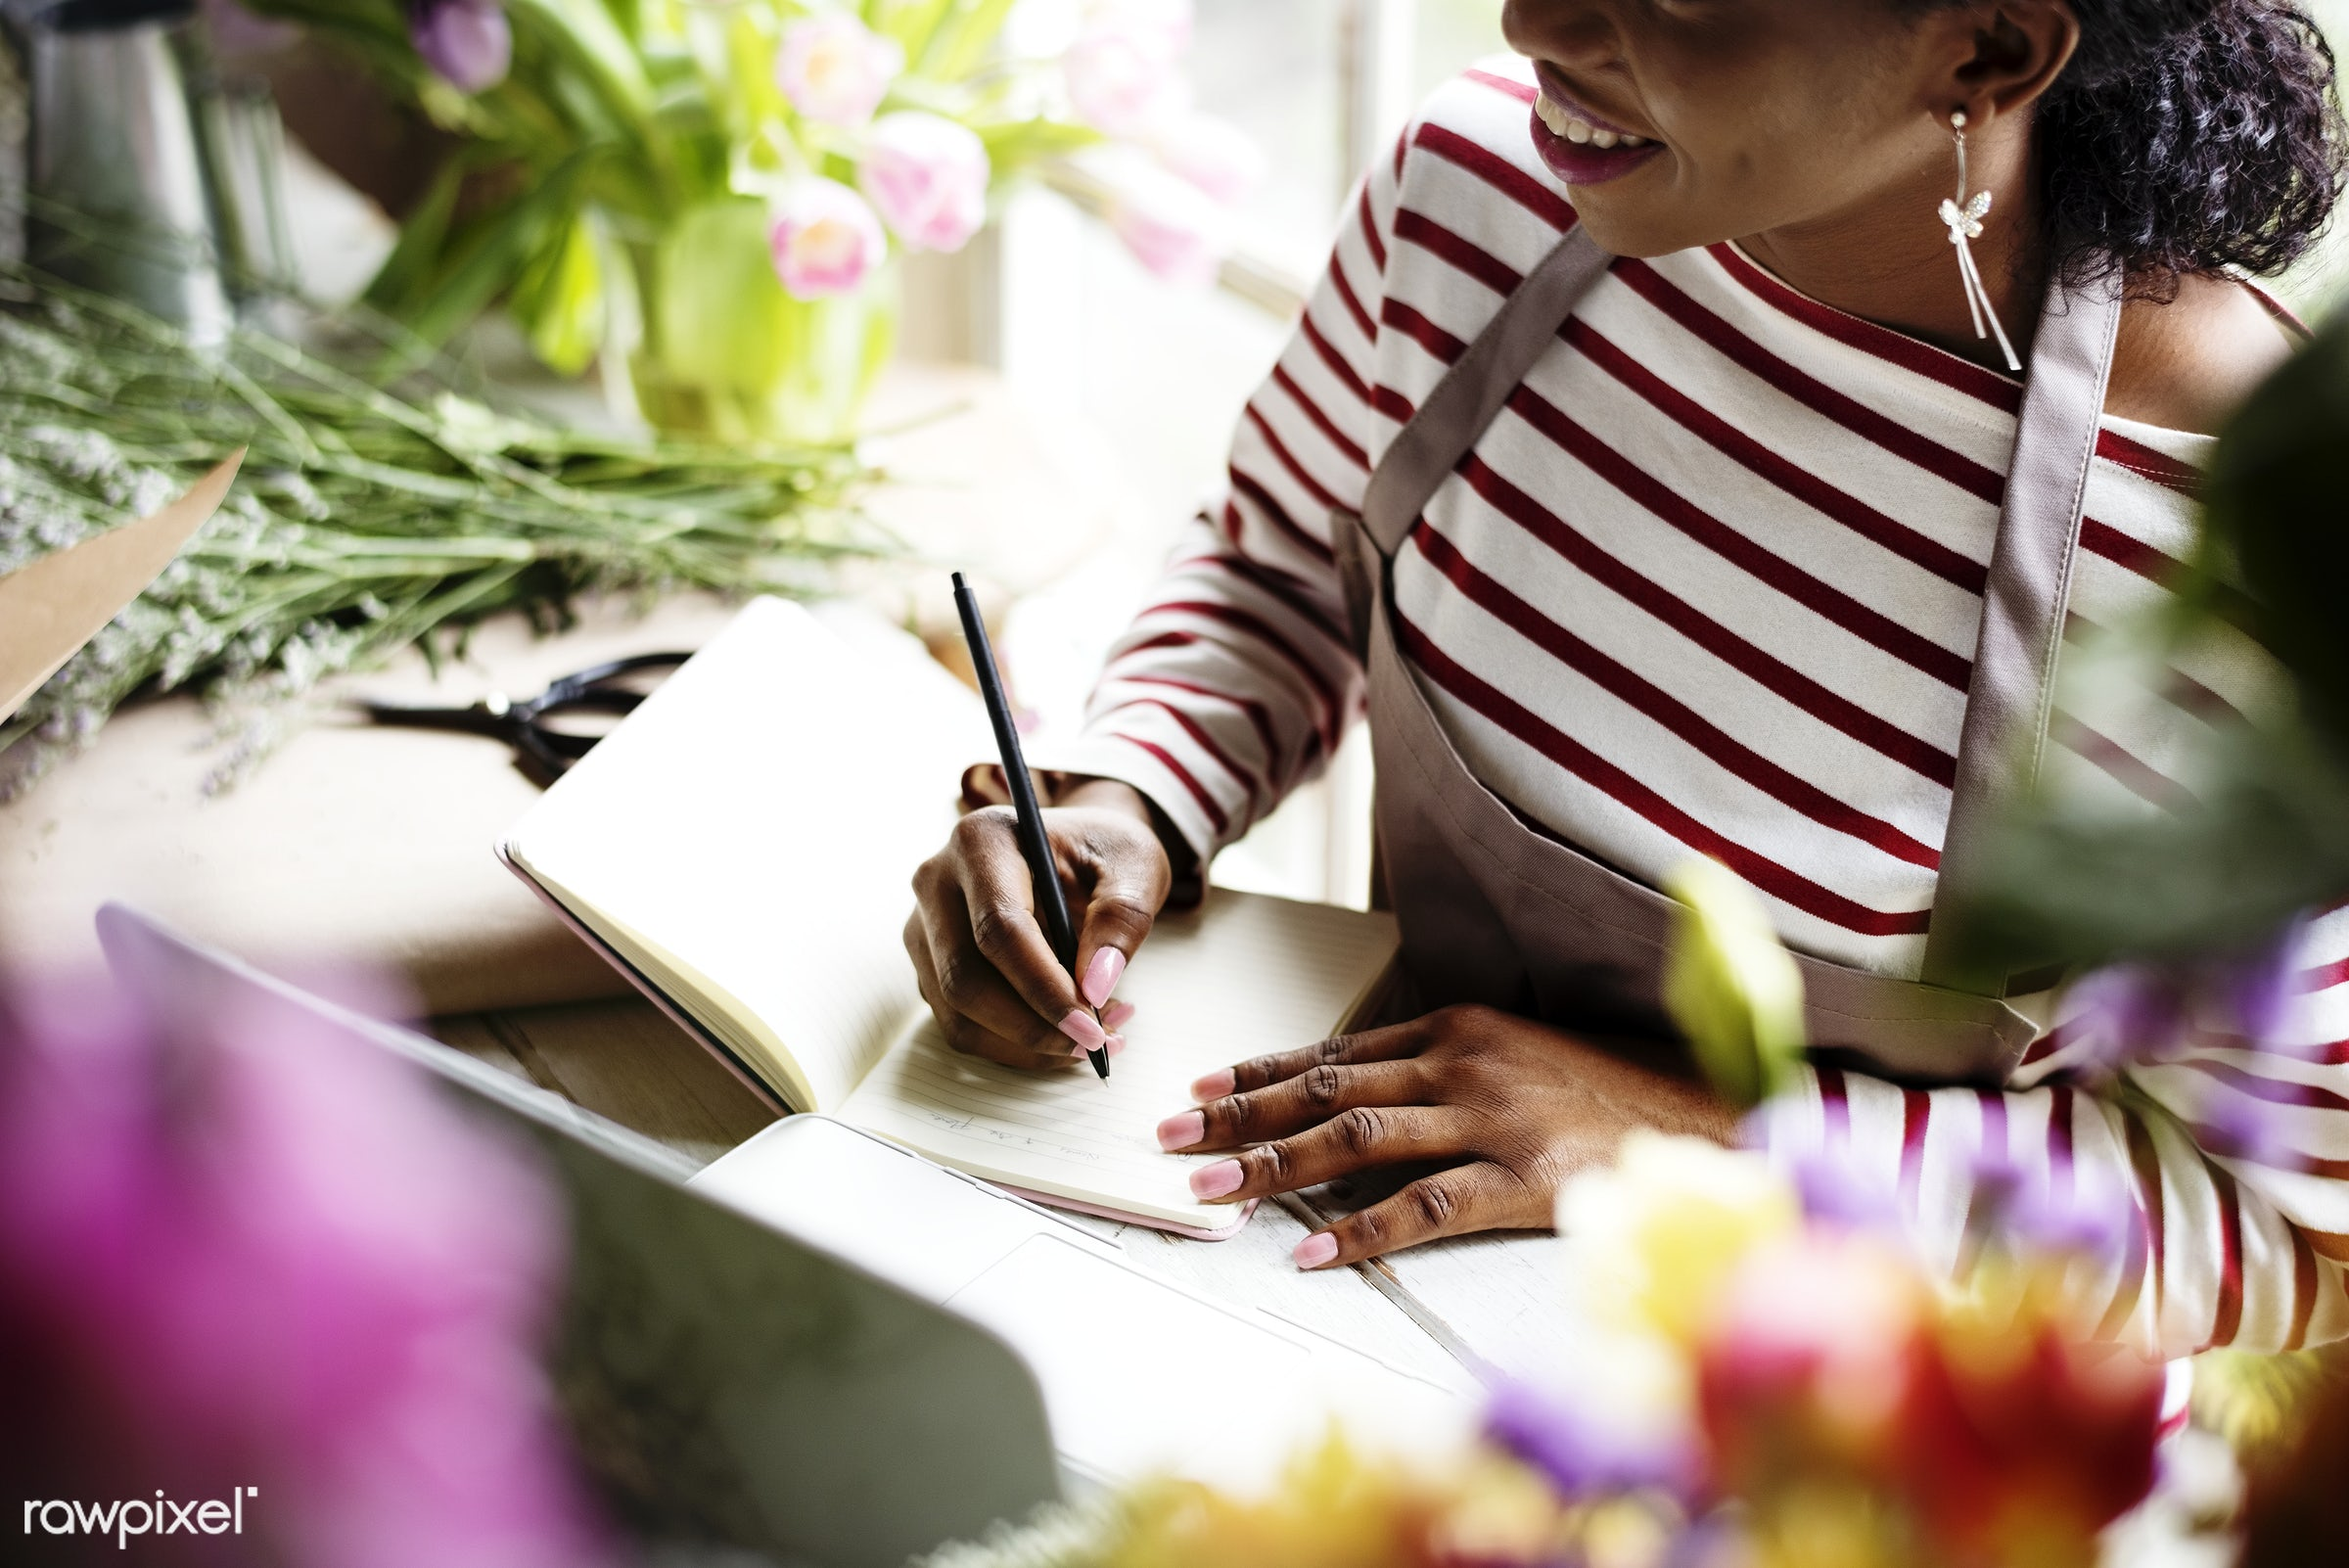 Black person writing on a notebook - black, writing, closeup, notebook, pencil, florist, workspace, laptop, desk, table,...